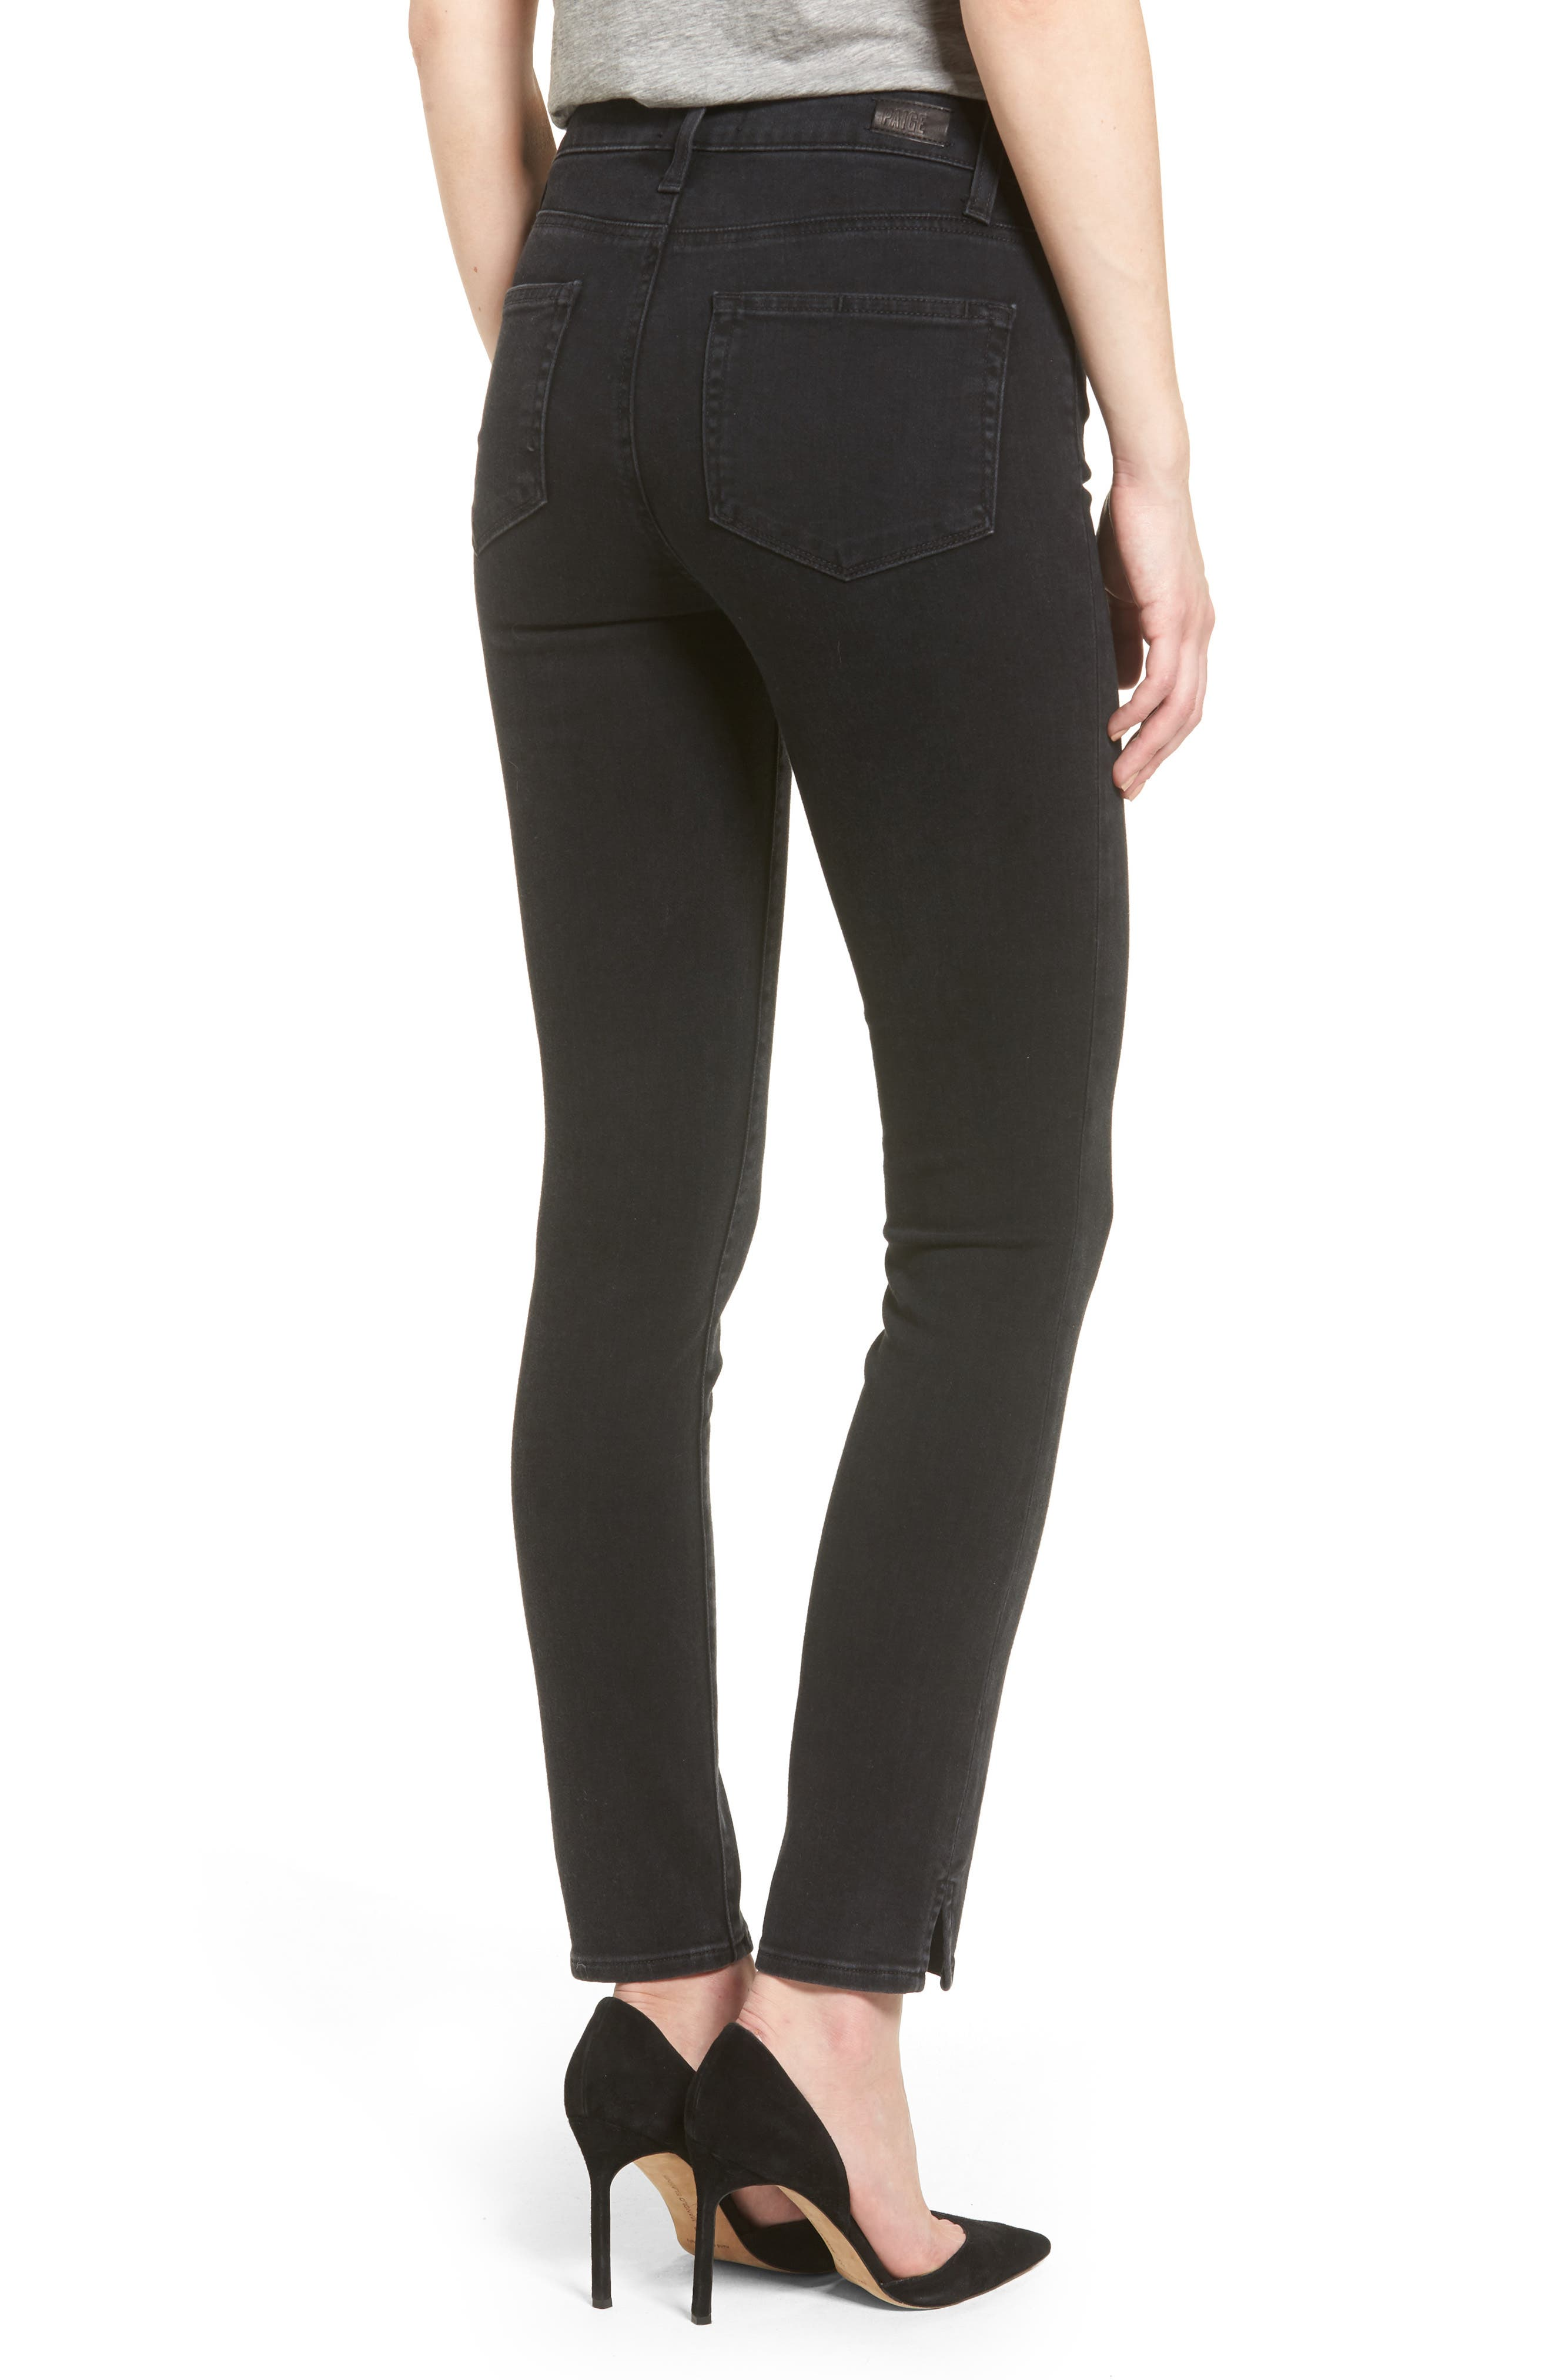 Hoxton Button High Waist Ankle Skinny Jeans,                             Alternate thumbnail 2, color,                             400